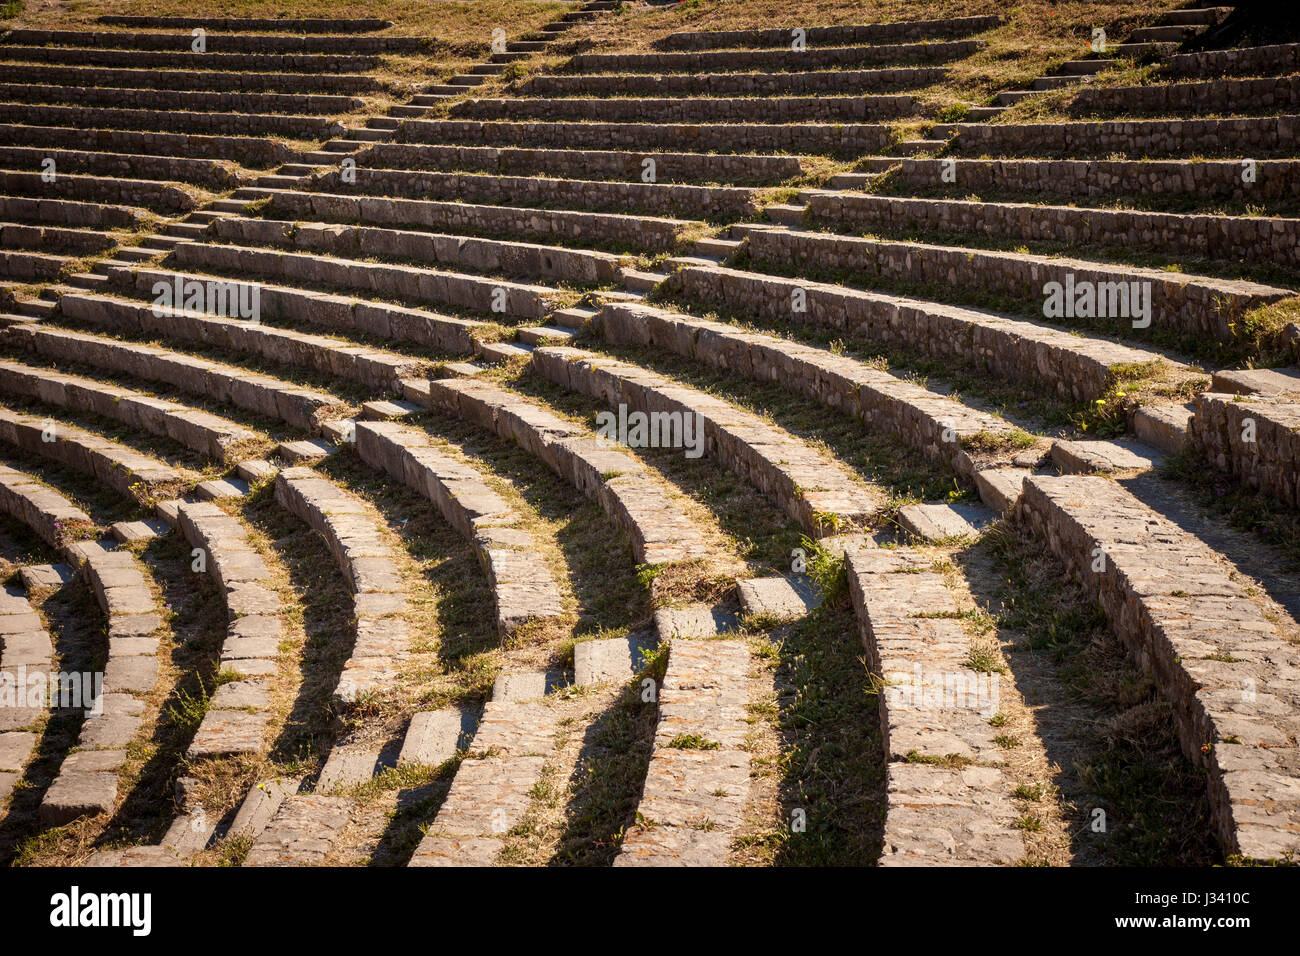 Rows of seating at Teatro Greco (Greek Theatre - 3rd c. BC), Taormina, Sicily, Italy - Stock Image